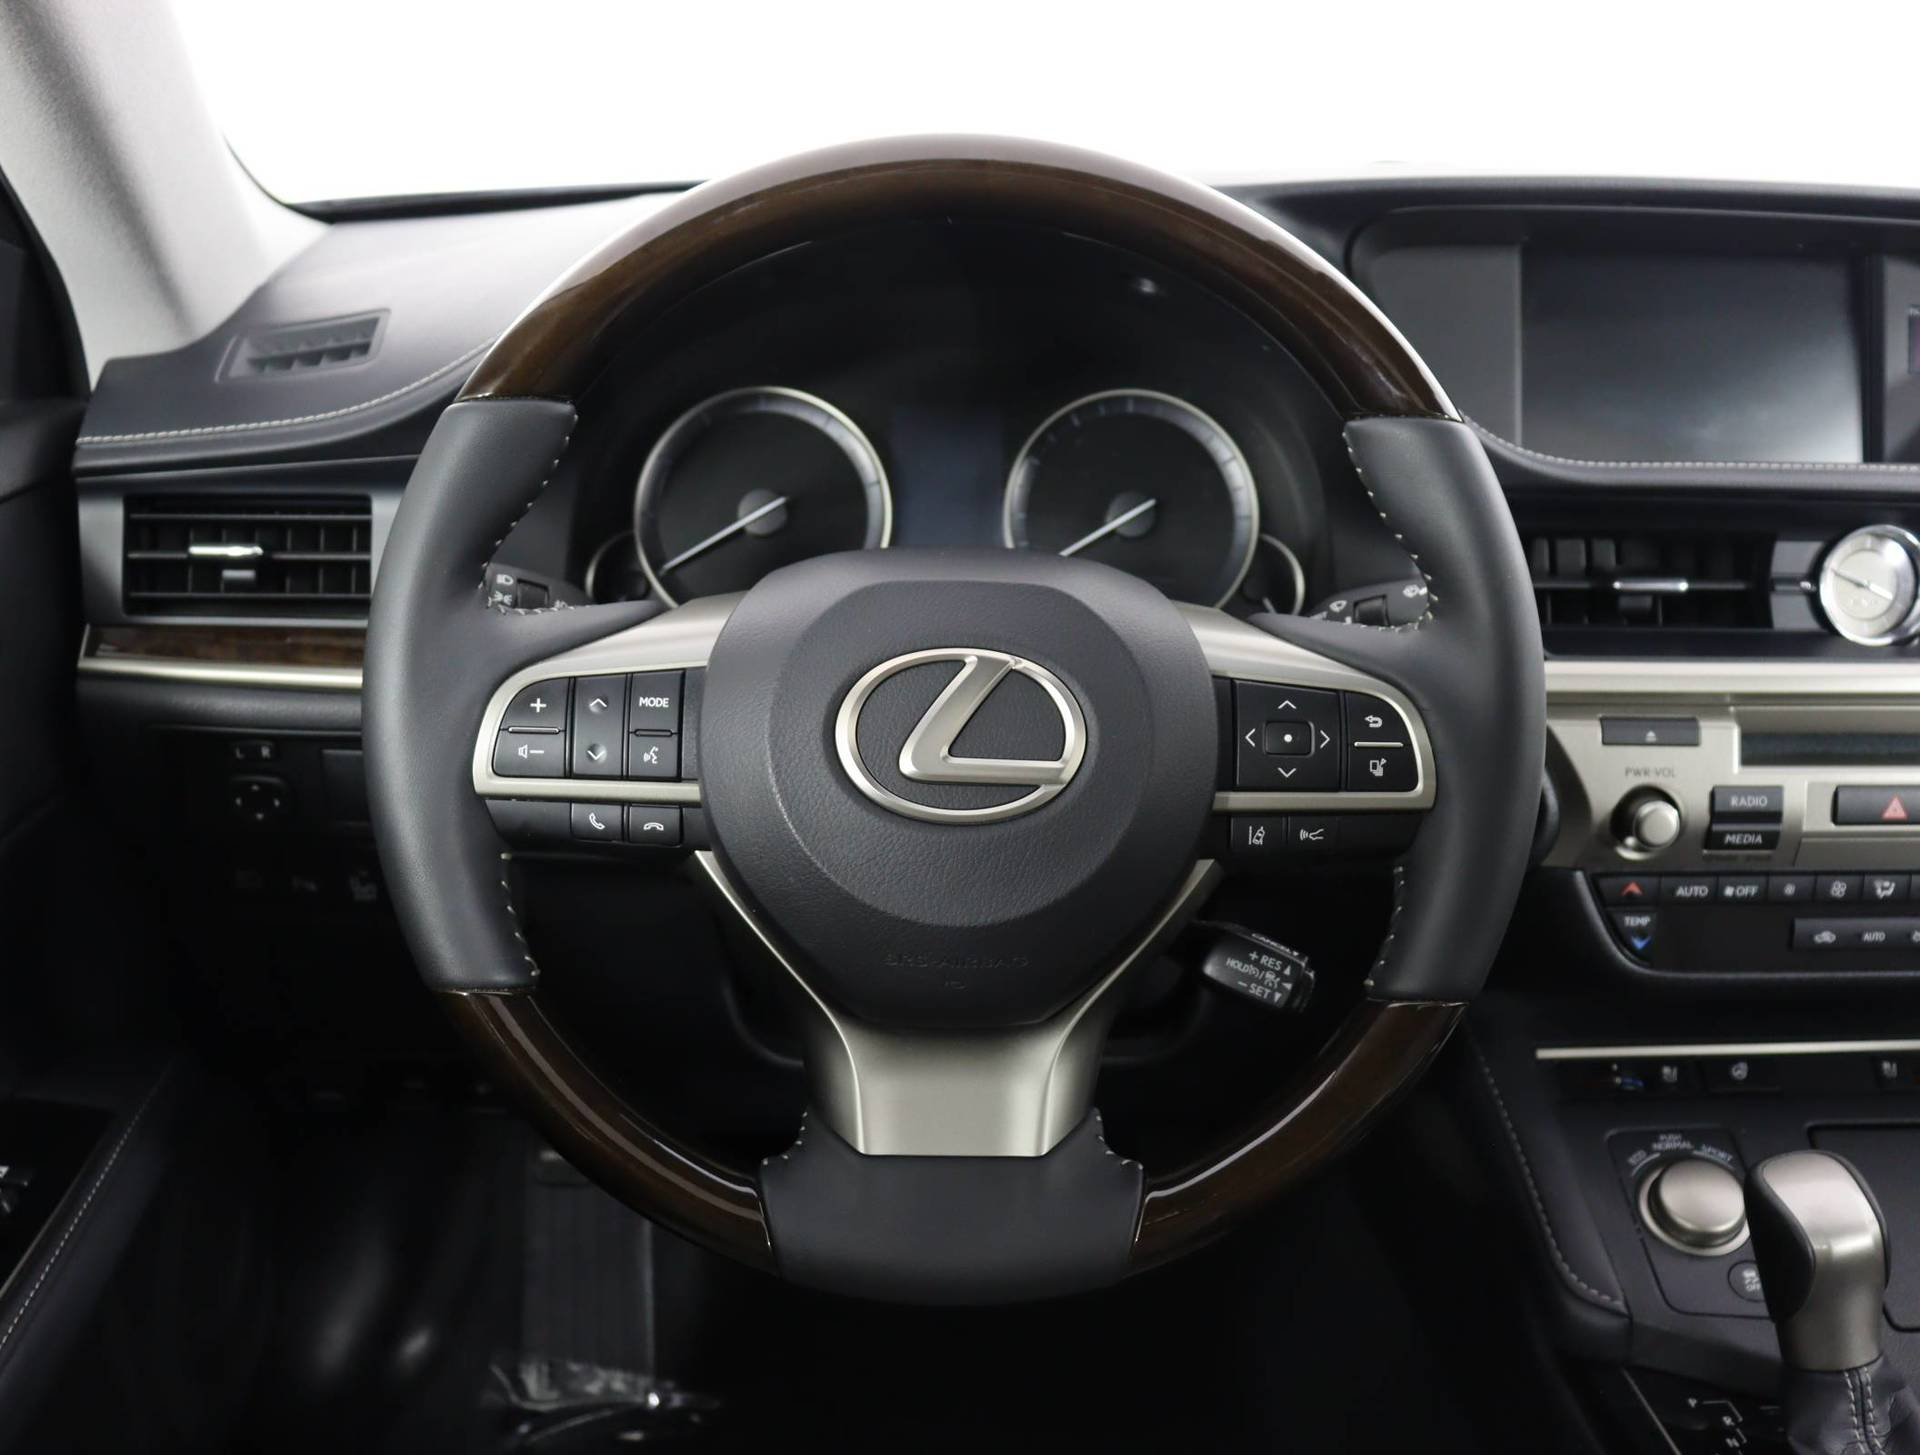 used vehicle - Sedan LEXUS ES 2018